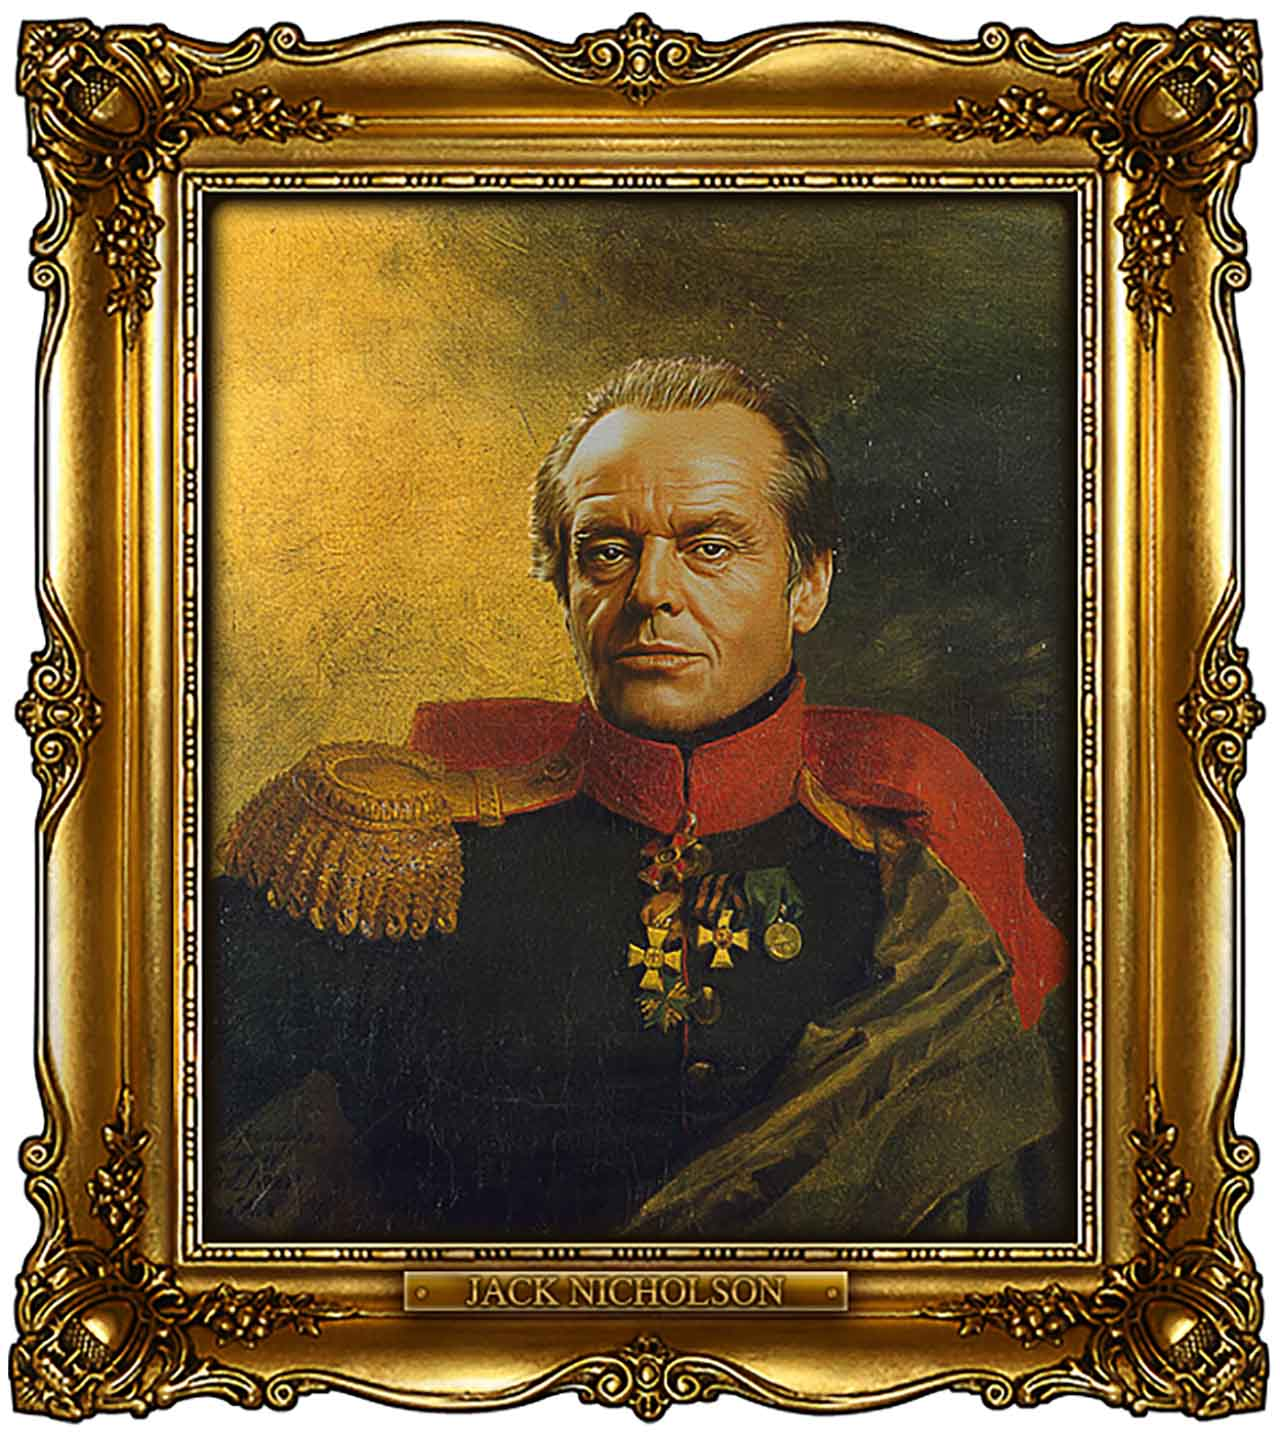 Artist Turns Famous Actors Into Russian Generals - Jack Nicholson